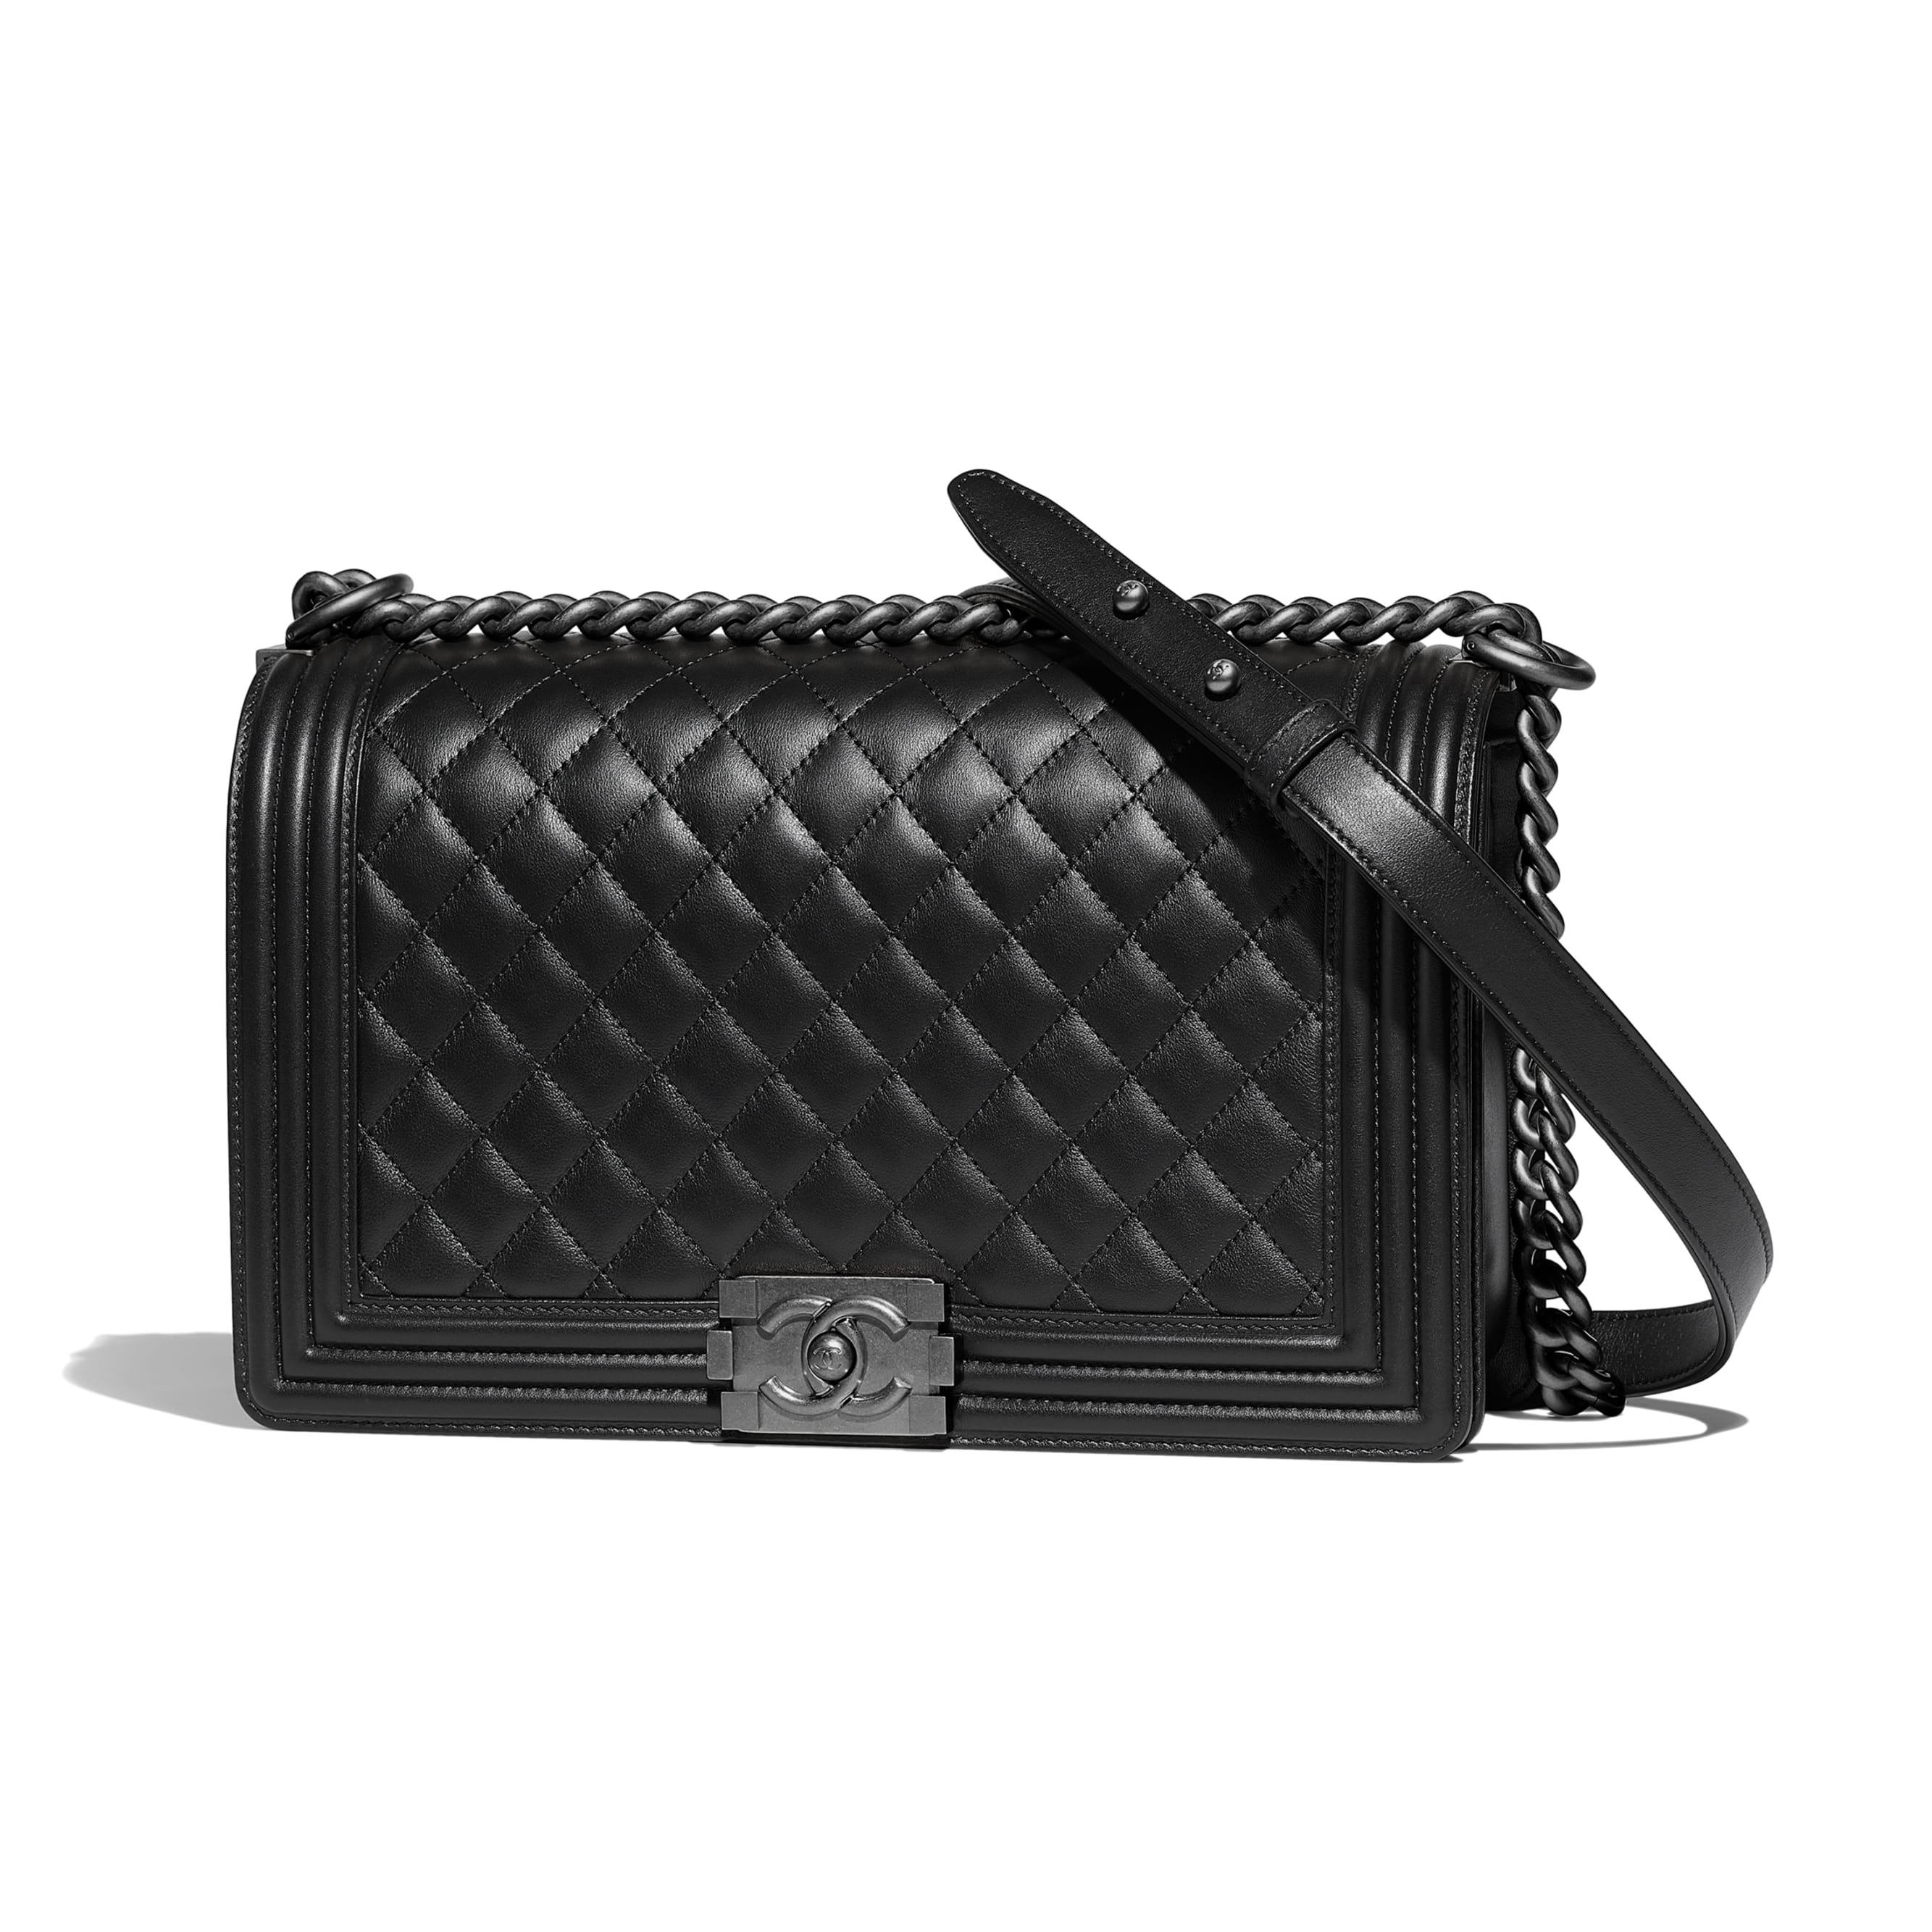 Large BOY CHANEL Handbag - Black - Calfskin & Ruthenium-Finish Metal - CHANEL - Default view - see standard sized version